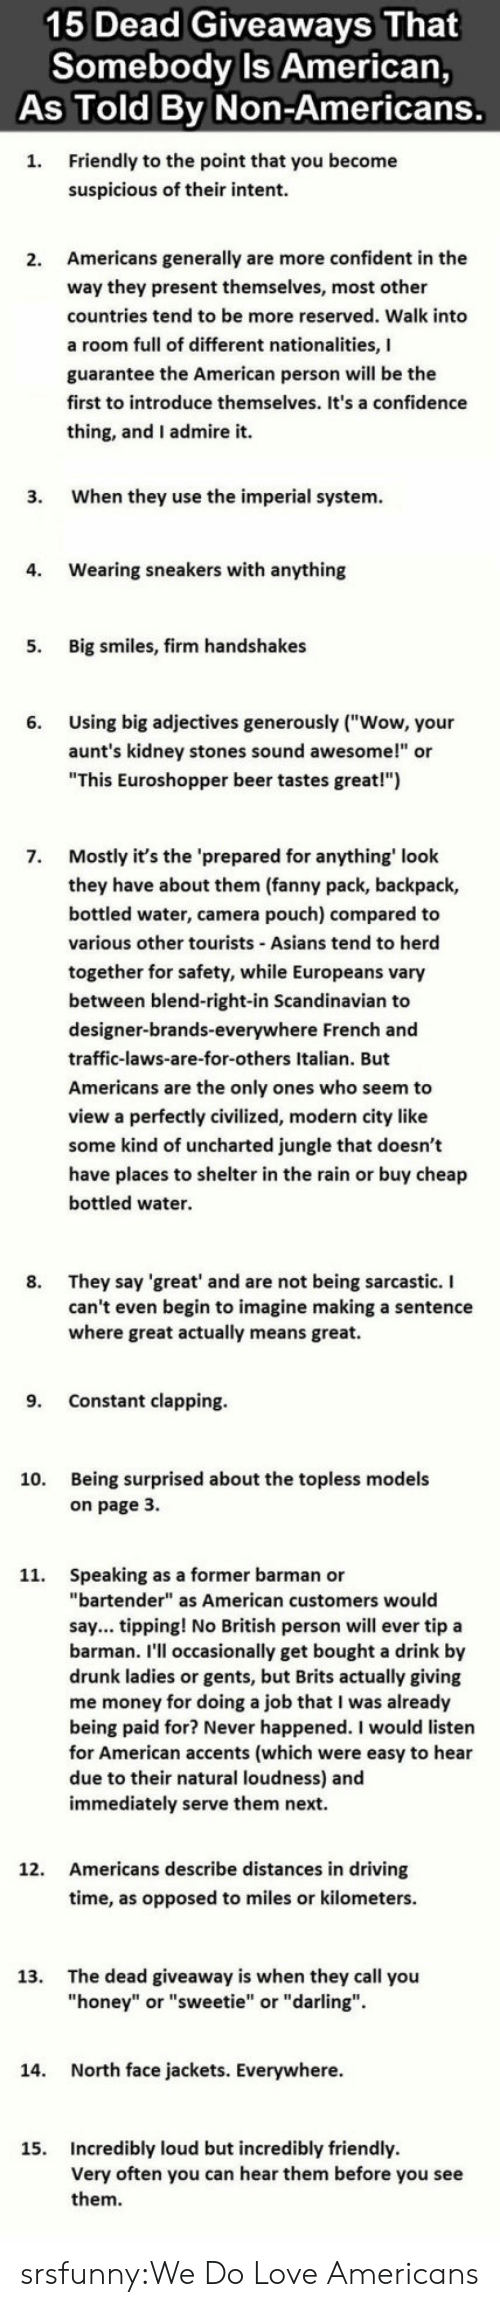 "Being Sarcastic: 15 Dead Giveaways That  Somebody Is American,  As Told Bv Non-Americans.  Friendly to the point that you become  suspicious of their intent  1.  Americans generally are more confident in the  way they present themselves, most other  countries tend to be more reserved. Walk into  a room full of different nationalities, I  guarantee the American person will be the  first to introduce themselves. It's a confidence  thing, and I admire it.  2.  3.  When they use the imperial system.  4.  Wearing sneakers with anything  5.  Big smiles, firm handshakes  Using big adjectives generously (""Wow, your  aunt's kidney stones sound awesome!"" or  ""This Euroshopper beer tastes great!"")  6.  Mostly it's the 'prepared for anything' look  they have about them (fanny pack, backpack,  bottled water, camera pouch) compared to  various other tourists Asians tend to herd  together for safety, while Europeans vary  between blend-right-in Scandinavian to  designer-brands-everywhere French and  traffic-laws-are-for-others Italian. But  Americans are the only ones who seem to  view a perfectly civilized, modern city like  some kind of uncharted jungle that doesn't  have places to shelter in the rain or buy cheap  bottled water.  7.  8. They say 'great' and are not being sarcastic. I  can't even begin to imagine making a sentence  where great actually means great.  9. Constant clapping  Being surprised about the topless models  on page 3.  10.  Speaking as a former barman or  ""bartender"" as American customers would  say... tipping! No British person will ever tip a  barman. I'll occasionally get bought a drink by  drunk ladies or gents, but Brits actually giving  me money for doing a job that I was already  being paid for? Never happened. I would listen  for American accents (which were easy to hear  due to their natural loudness) and  immediately serve them next.  11.  Americans describe distances in driving  time, as opposed to miles or kilometers.  12.  The dead giveaway is when they call you  ""honey"" or ""sweetie"" or ""darling"".  13.  14.  North face jackets. Everywhere.  Incredibly loud but incredibly friendly  Very often you can hear them before you see  them  15. srsfunny:We Do Love Americans"